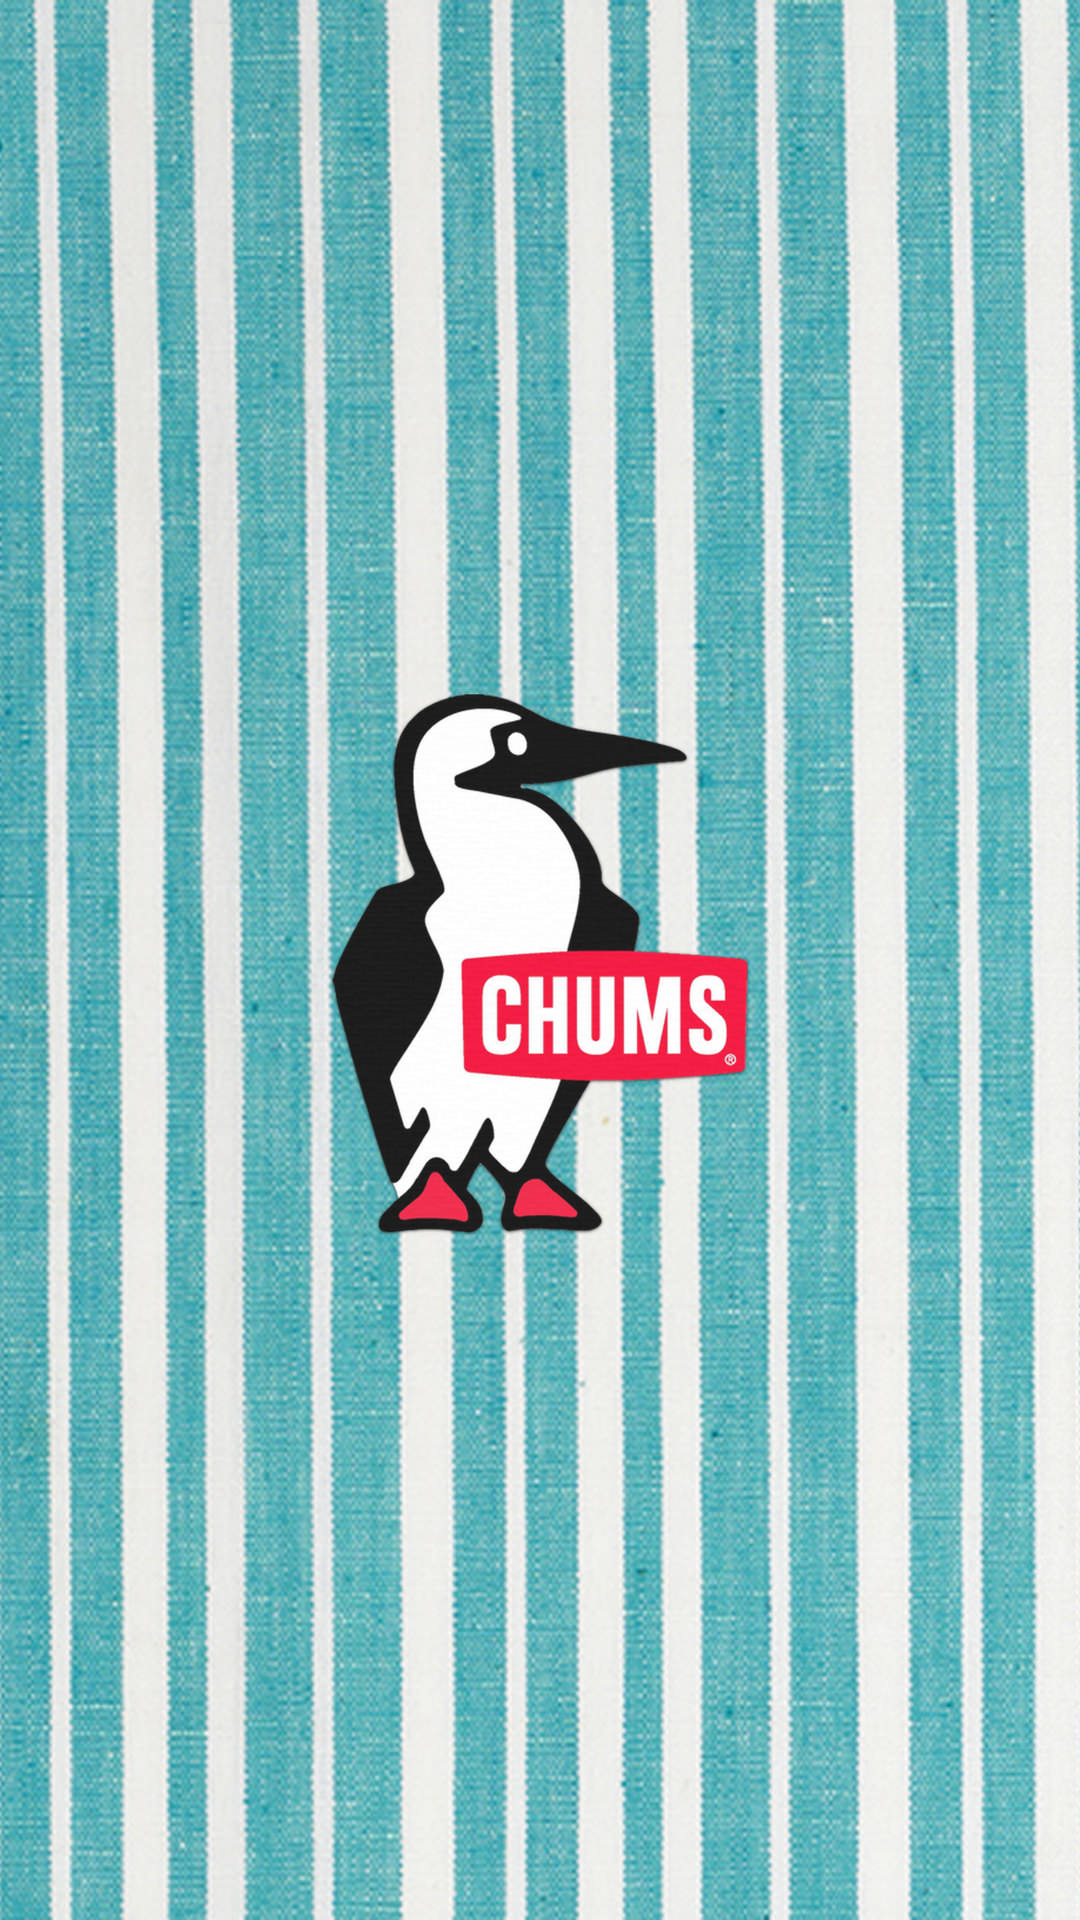 chums22 - 50 CHUMS HQ Smartphone Wallpaper Collection